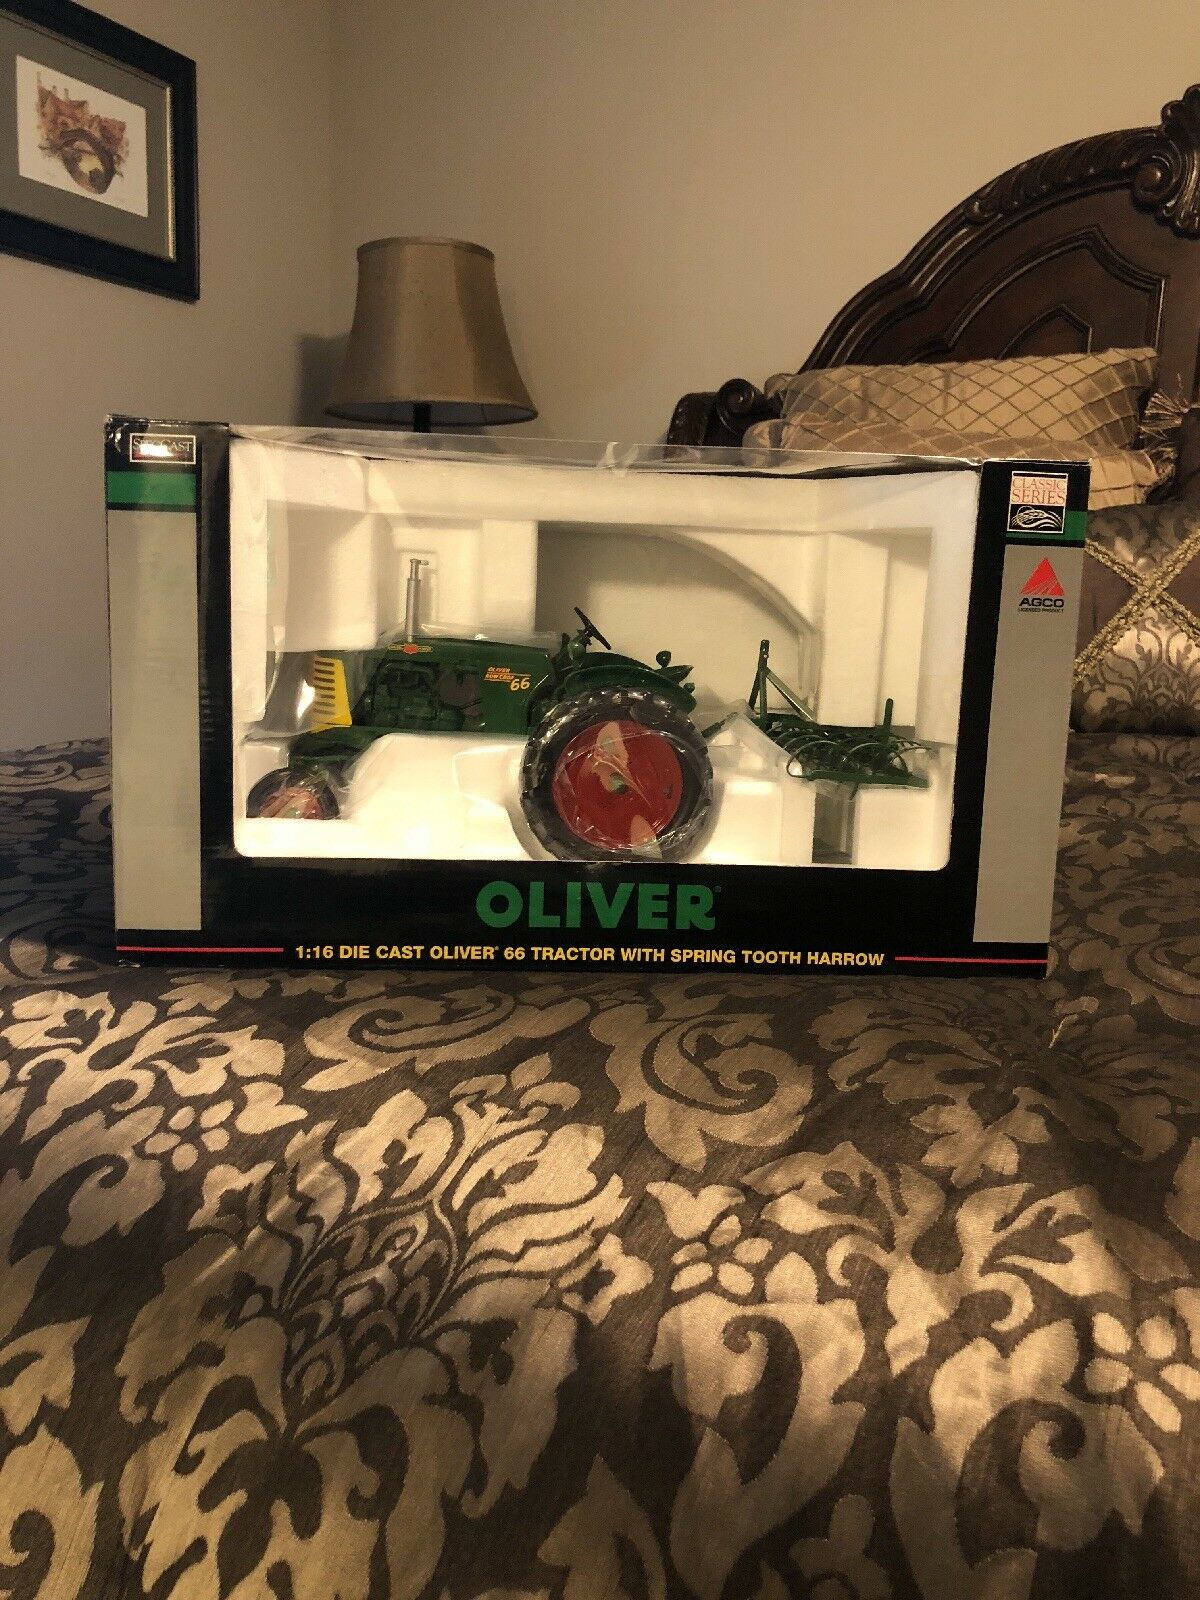 Oliver 66 With Spring Tooth Harrow Toy Tractor Times Edition  By SpecCast